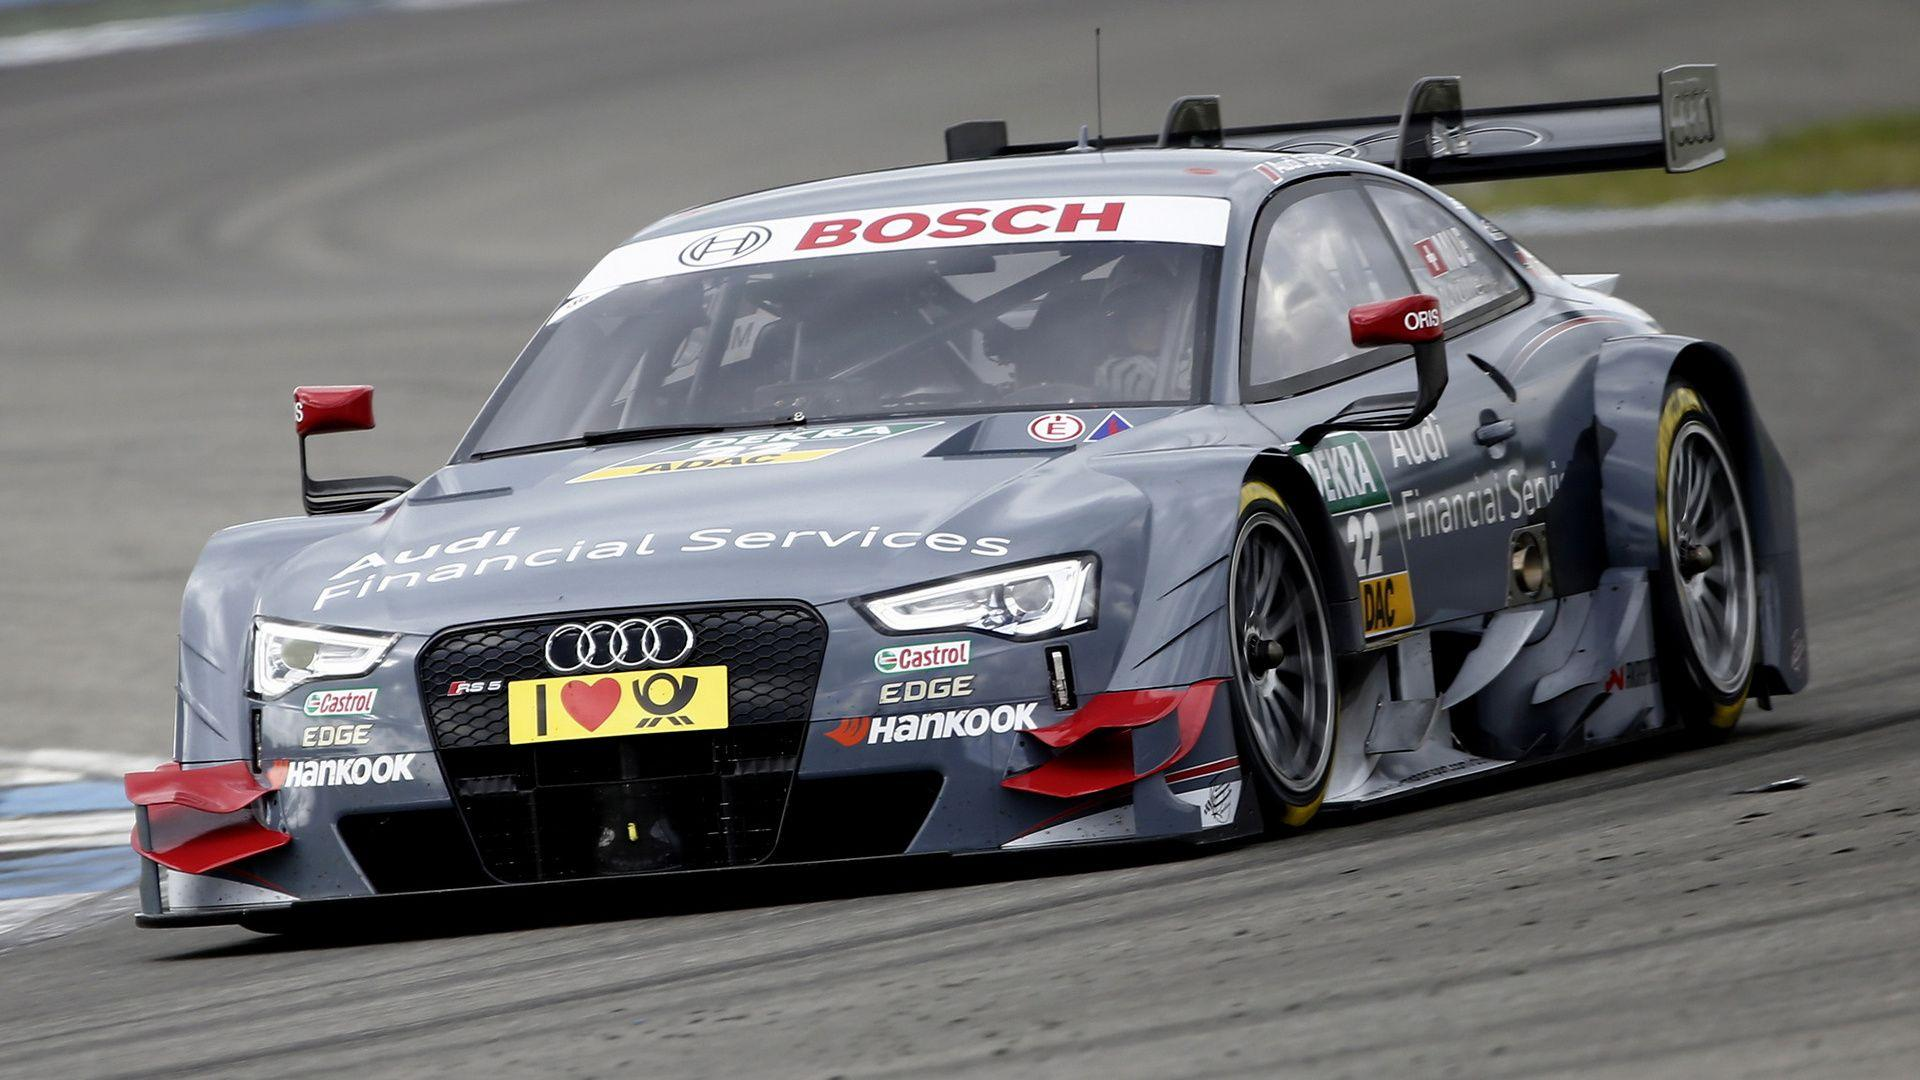 2014 Audi RS5 DTM Full HD Wallpaper and Background Image ...